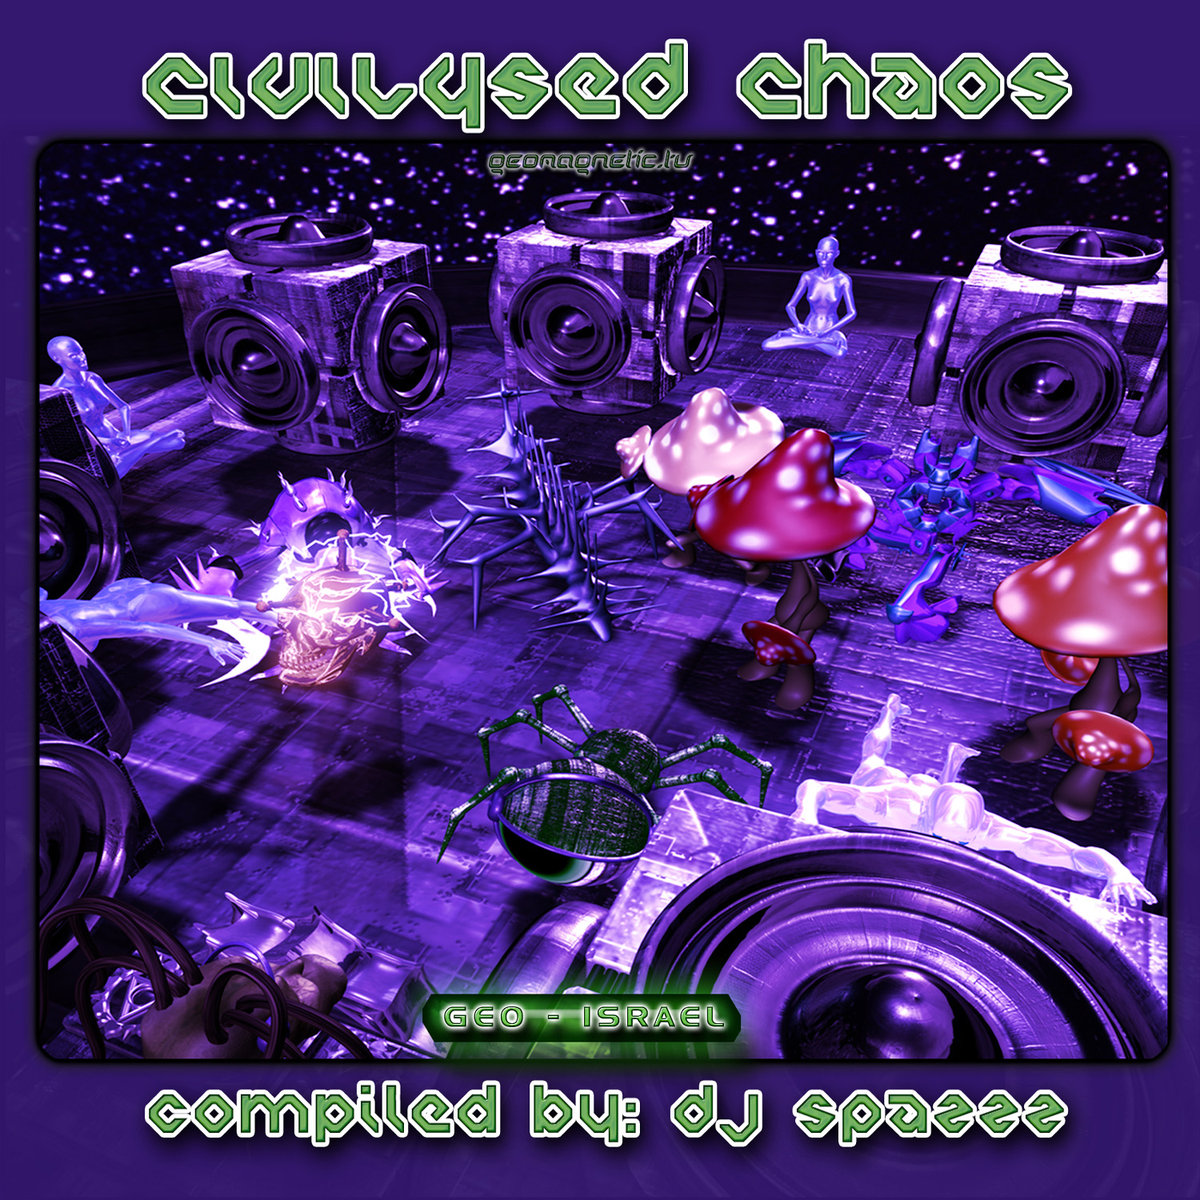 Darkforce & Spazzz - Darkness And The Spirit @ 'Various Artists - Civilysed Chaos (Compiled by DJ Spazzz)' album (electronic, goa)